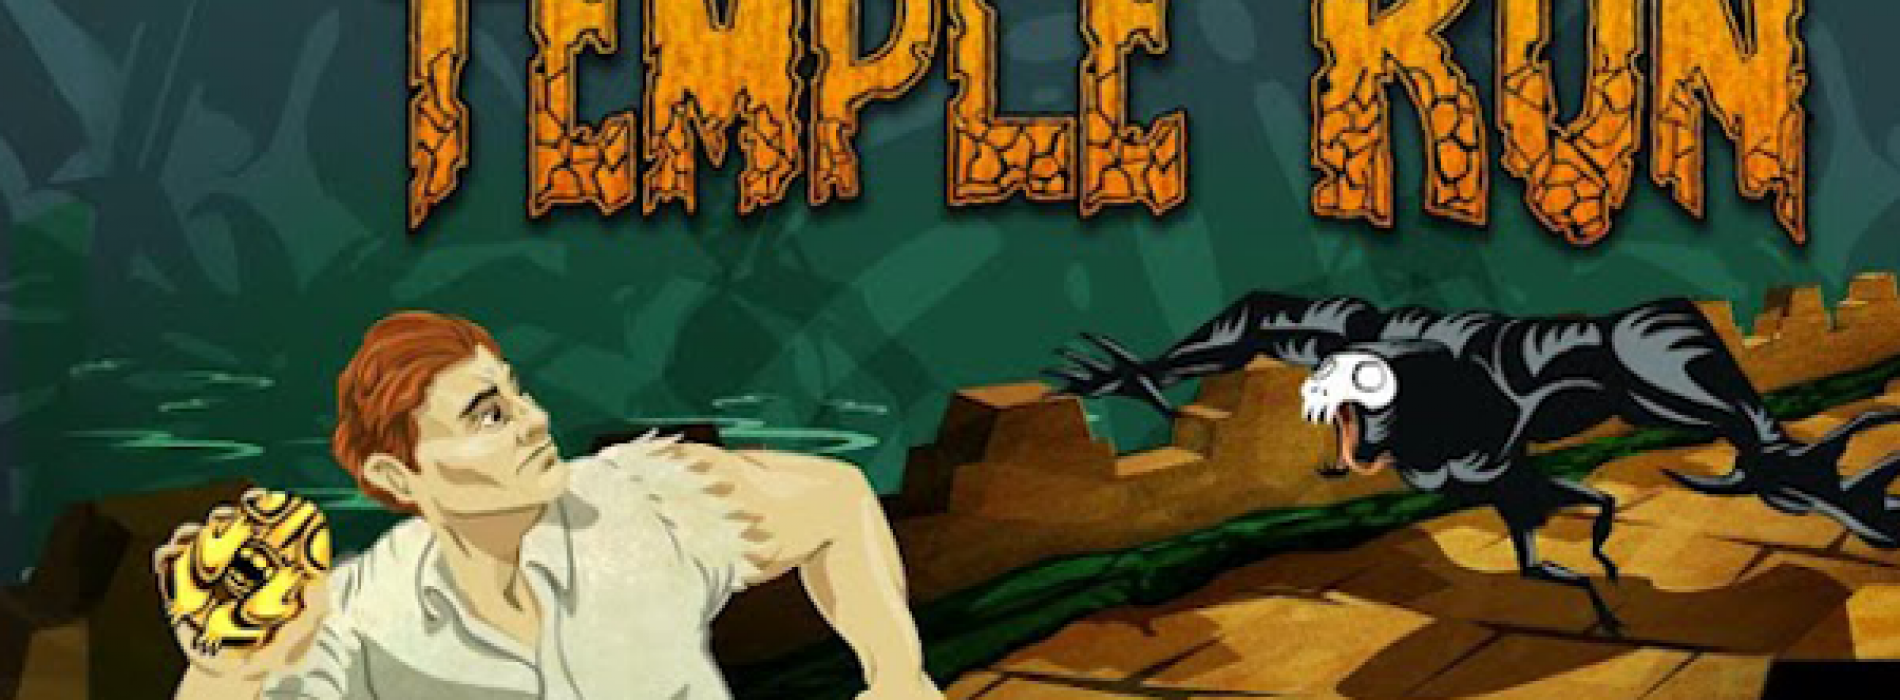 Temple Run for Android hits 10 million downloads and pulls in Twitter integration